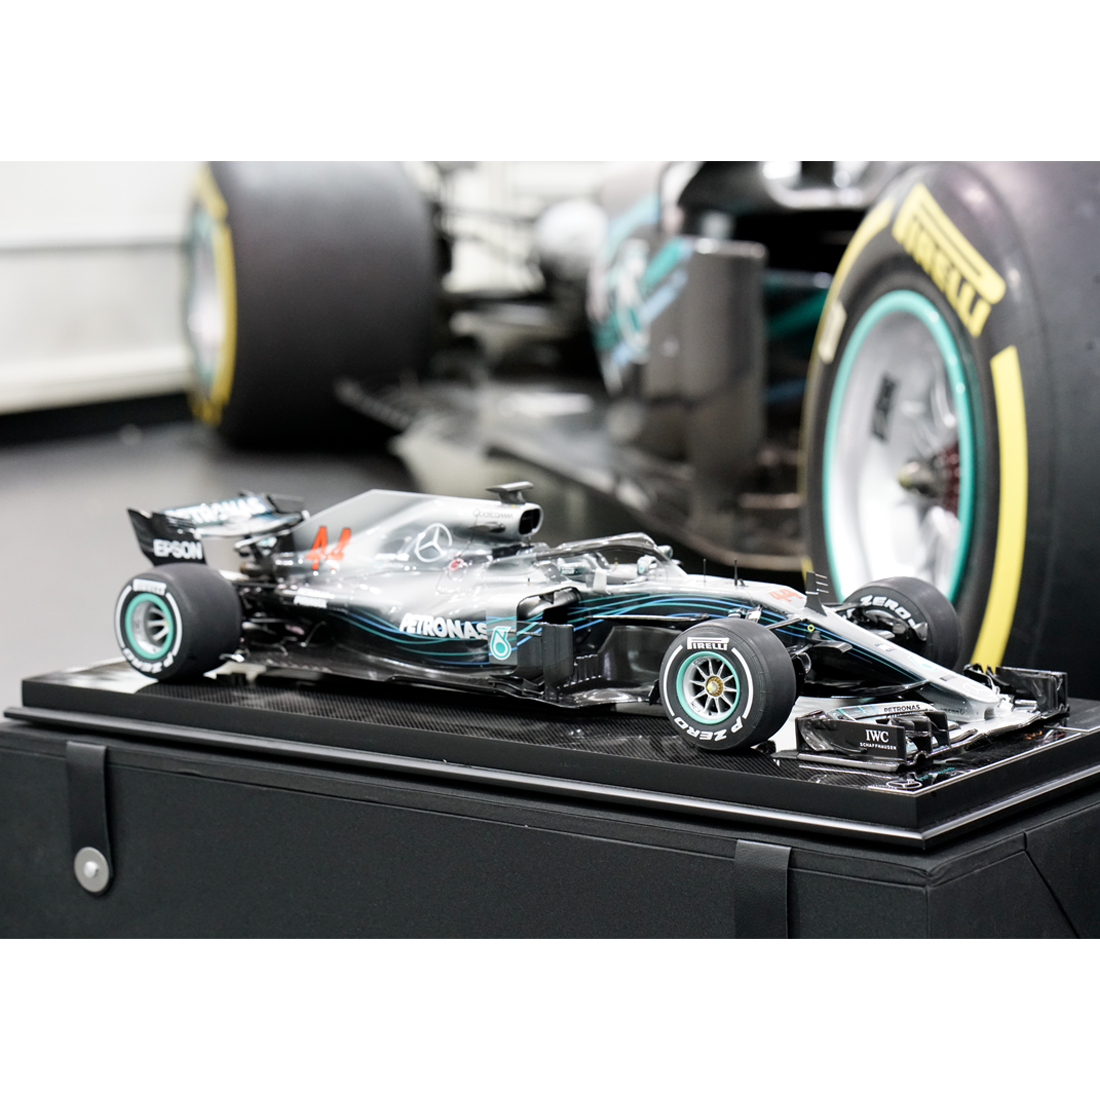 2b0ae508dc2 Mercedes AMG Petronas Lewis Hamilton 1 8 Scale Model Car Limited Edition. Mercedes  AMG Petronas Lewis Hamilton 1 8 Scale Model Car Limited Edition